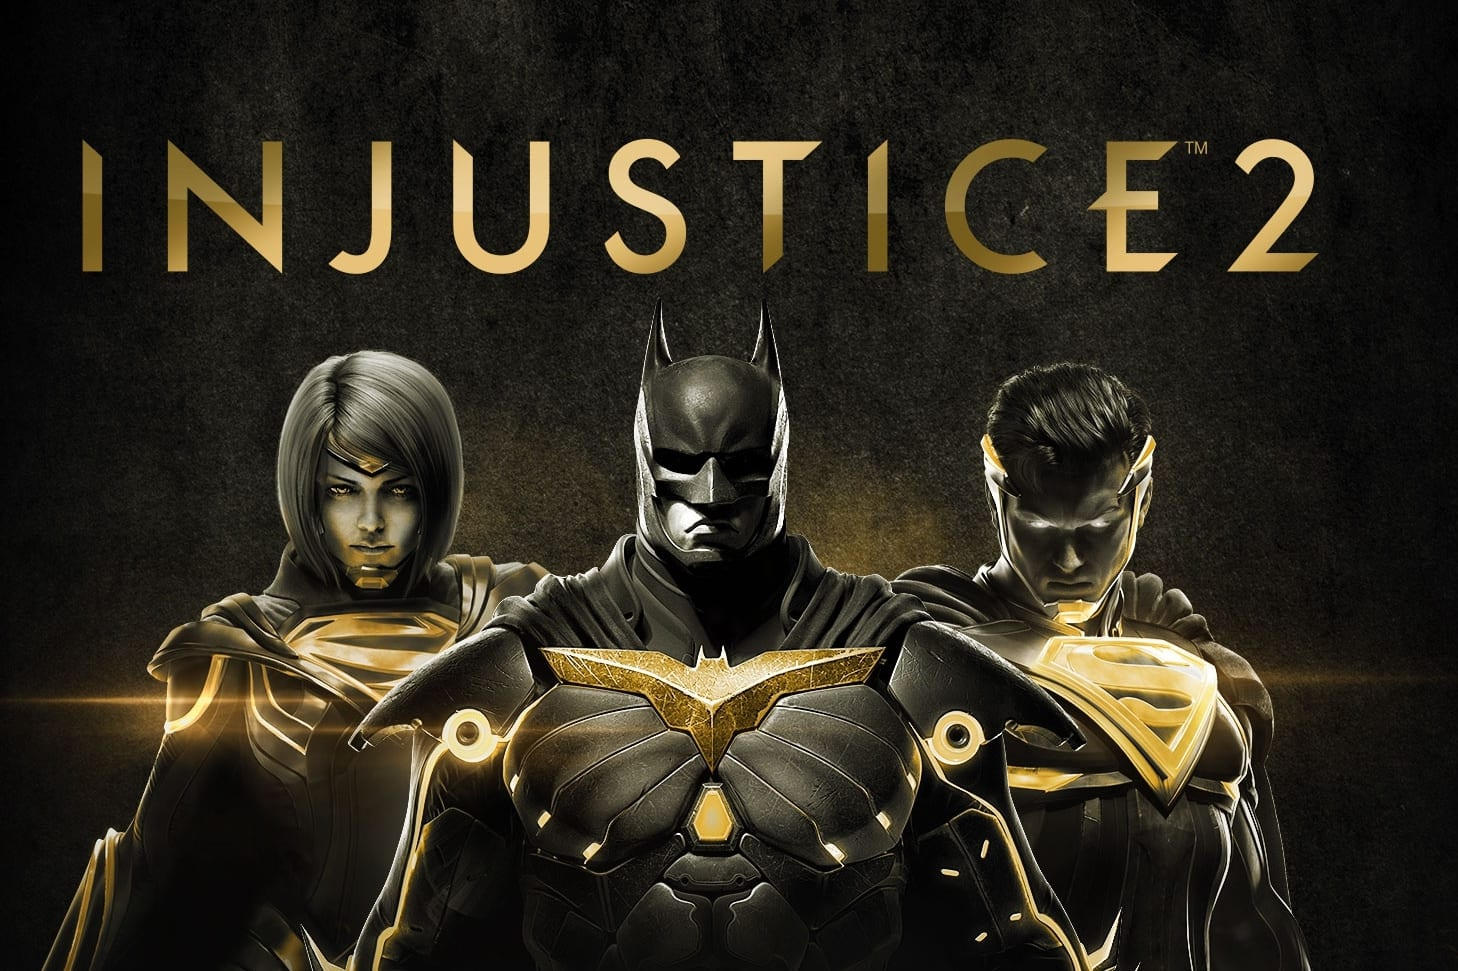 Justice League Movie Hd Wallpapers Injustice 2 Legendary Edition Announced For March 27